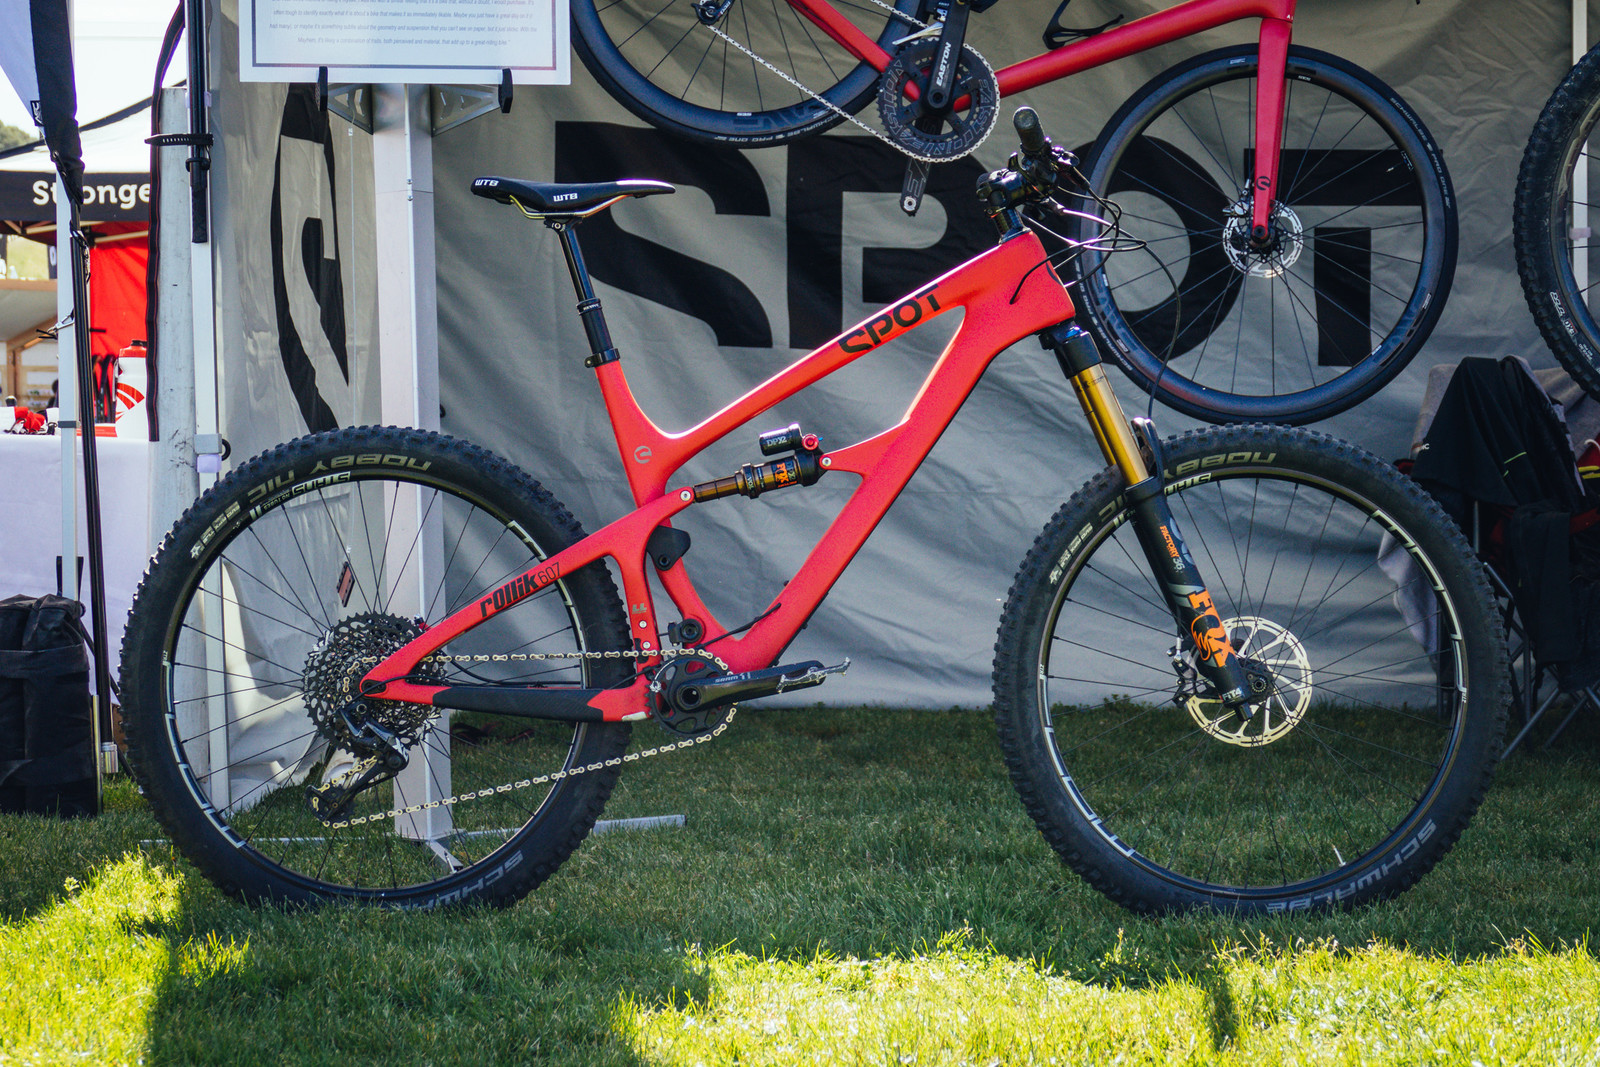 Spot Brand's New Rollik 607 Has a Very Unique Suspension Design - Sea Otter Classic